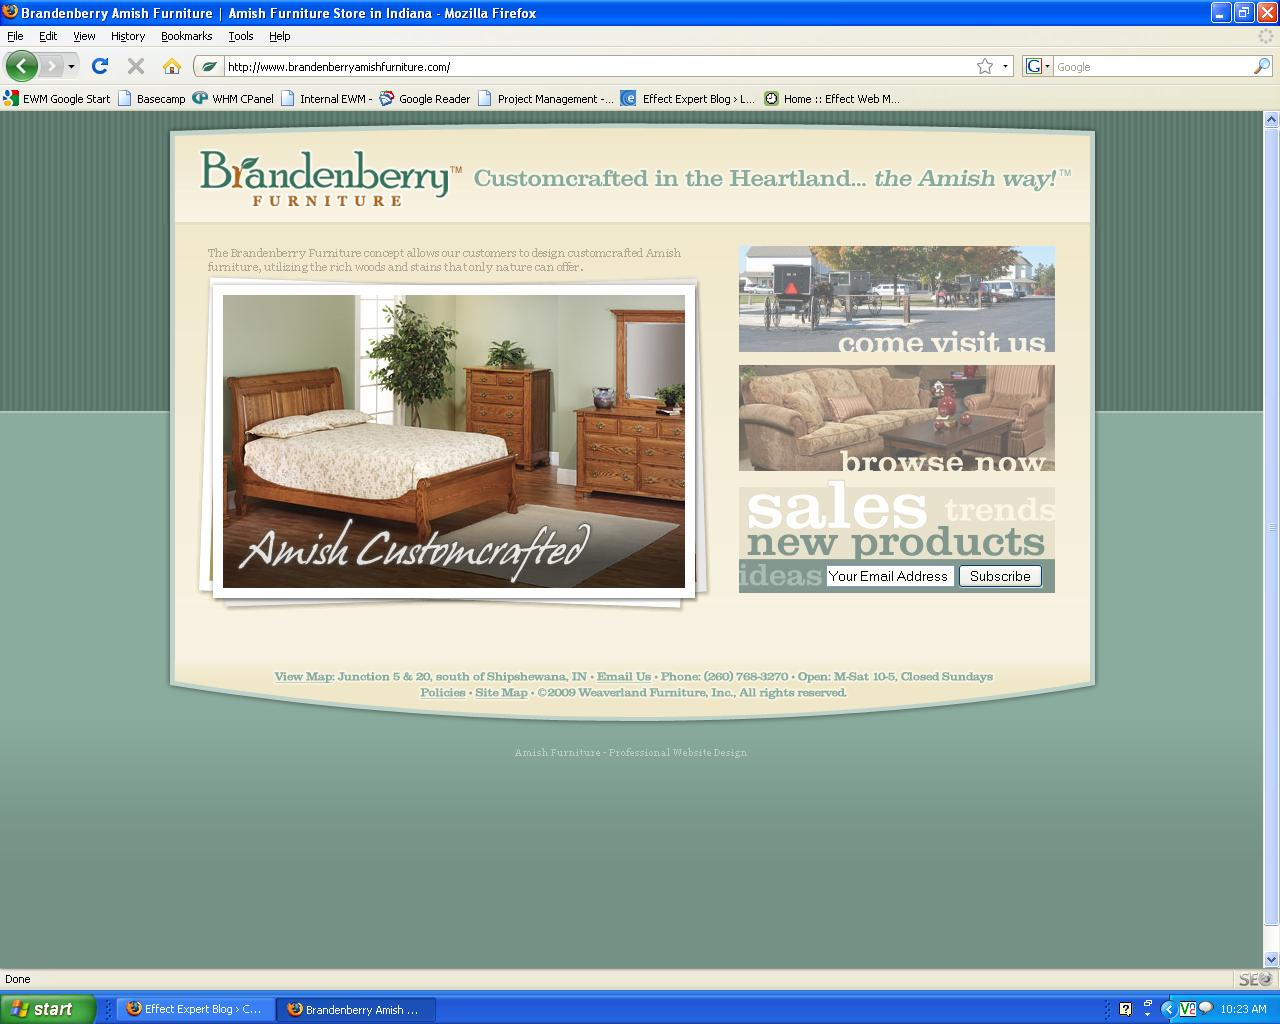 Brandenberry Amish Furniture